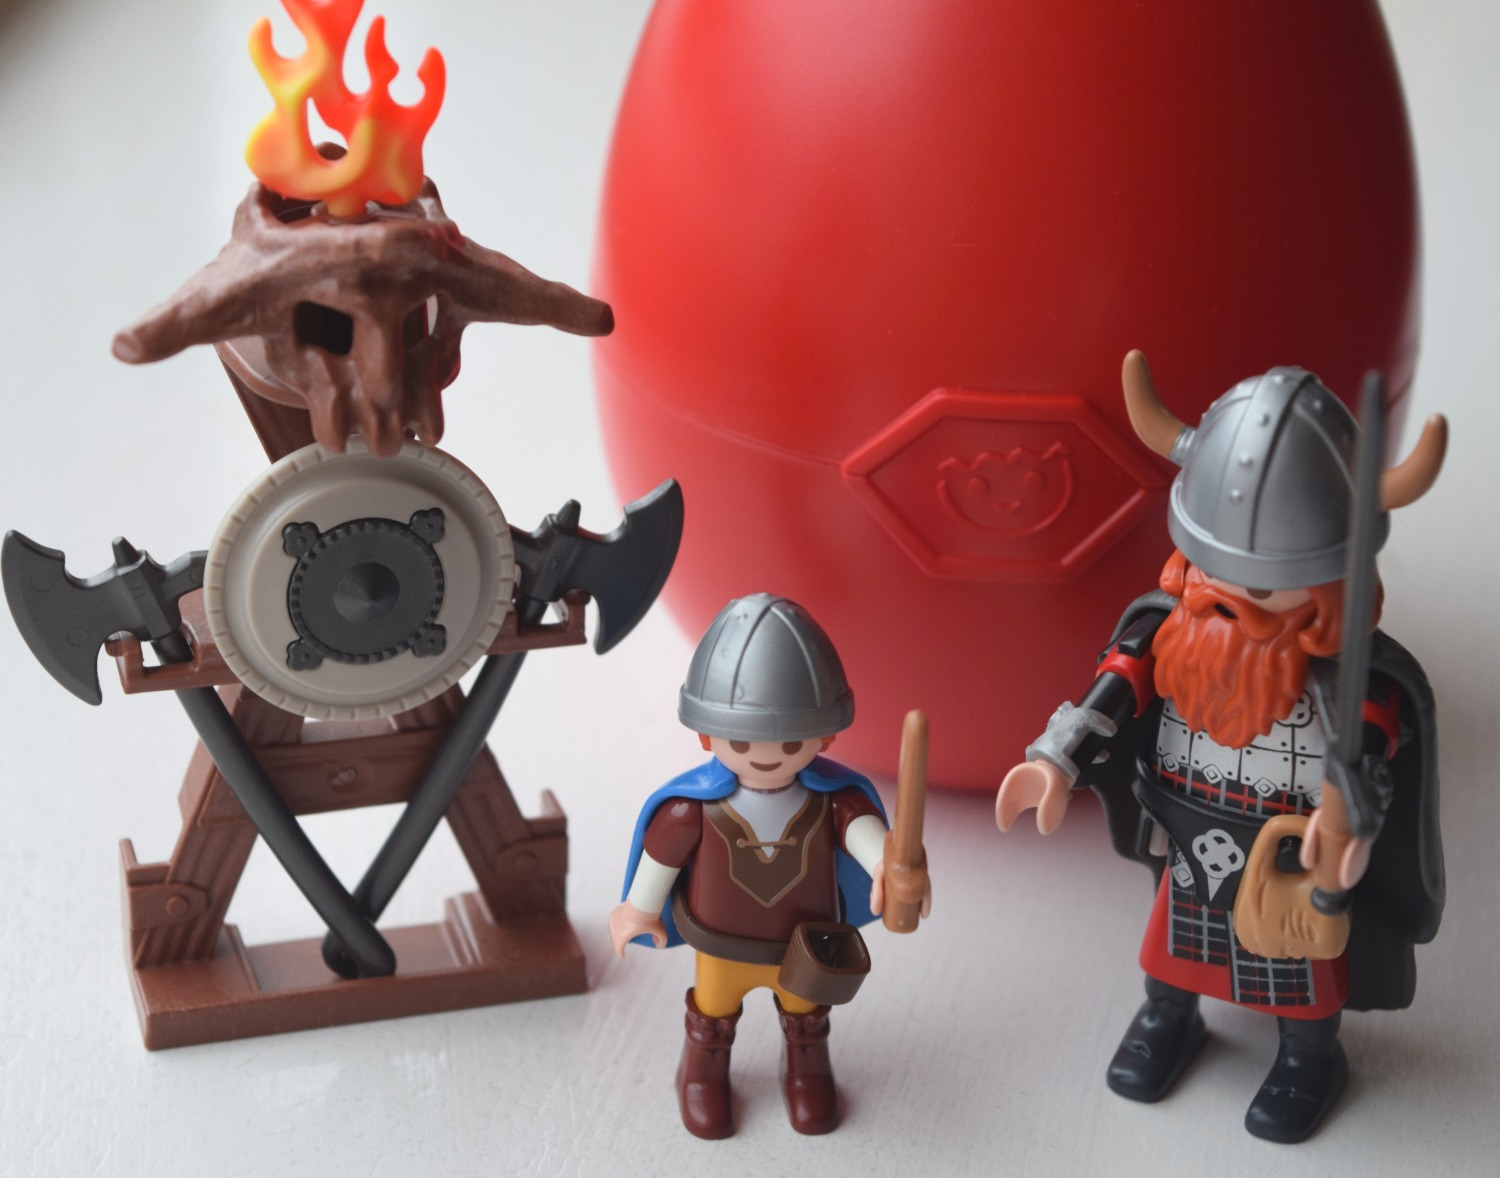 Playmobil Easter egg Vikings with Shield set